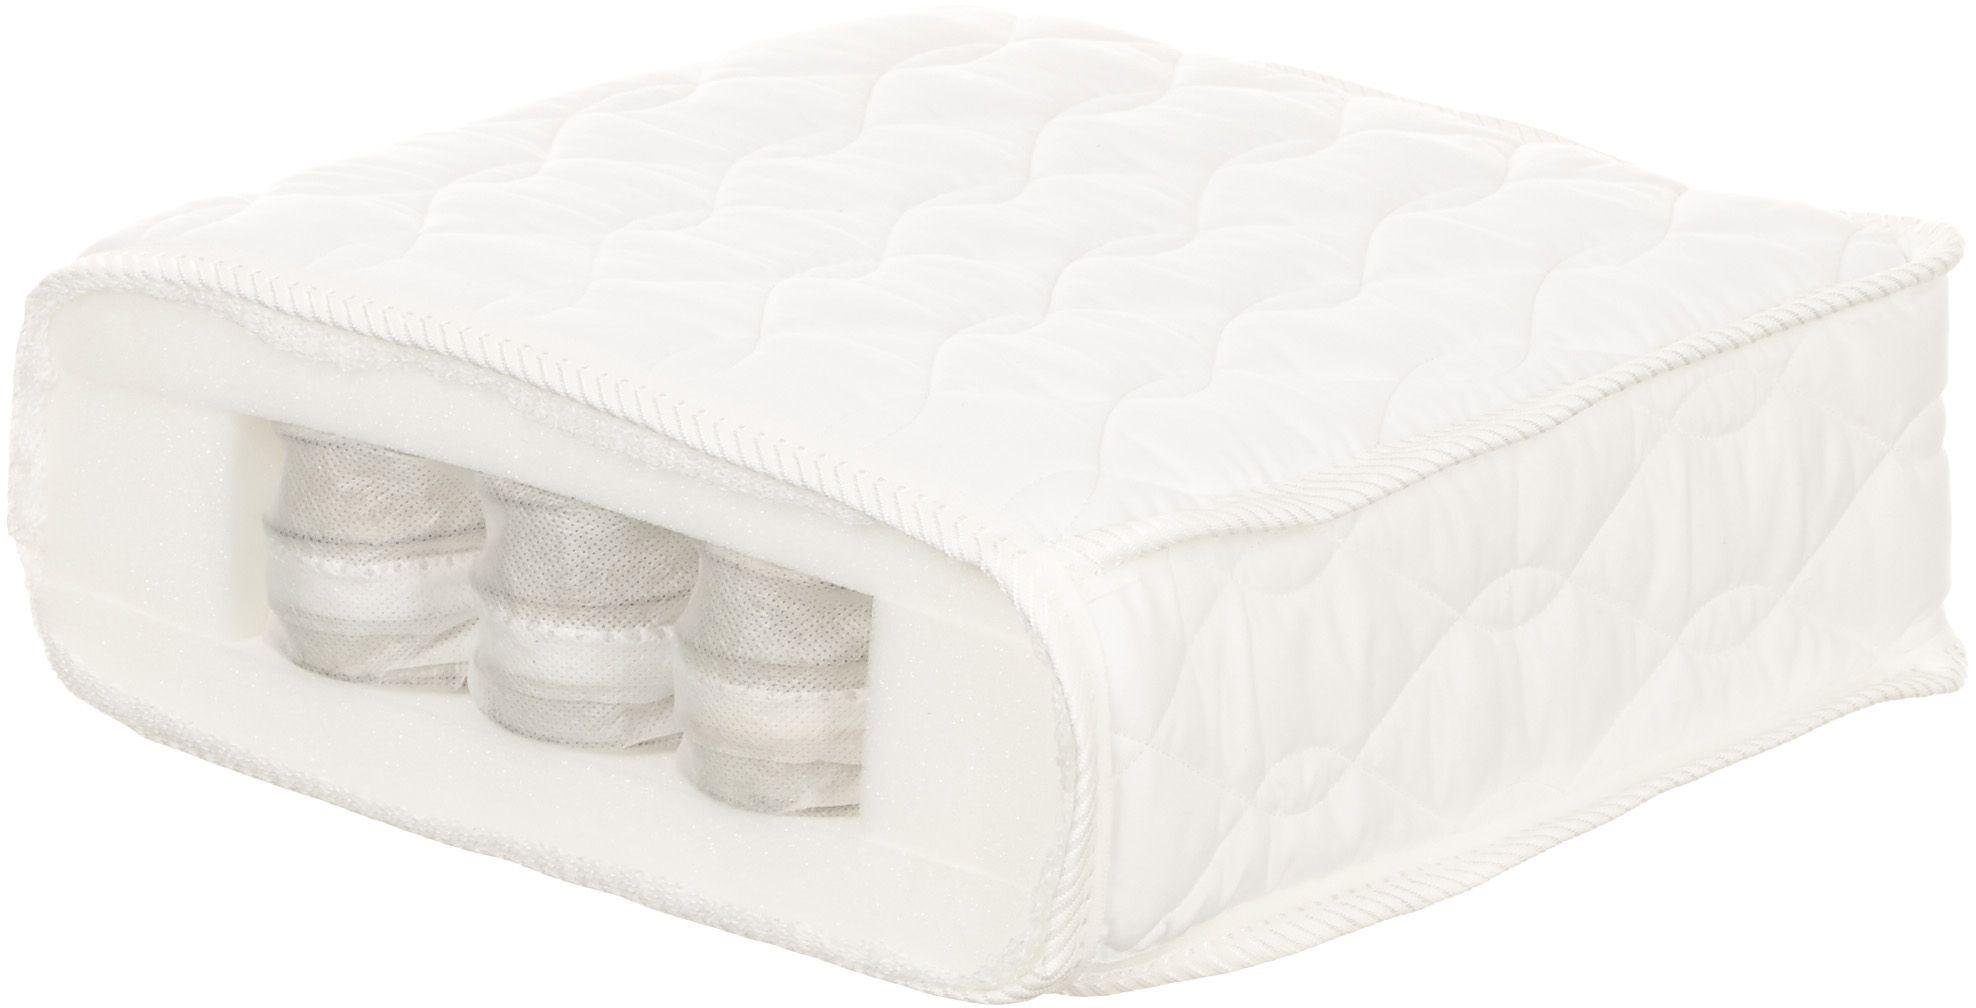 Obaby 140 x 70cm Pocket Sprung Cot Bed Mattress.